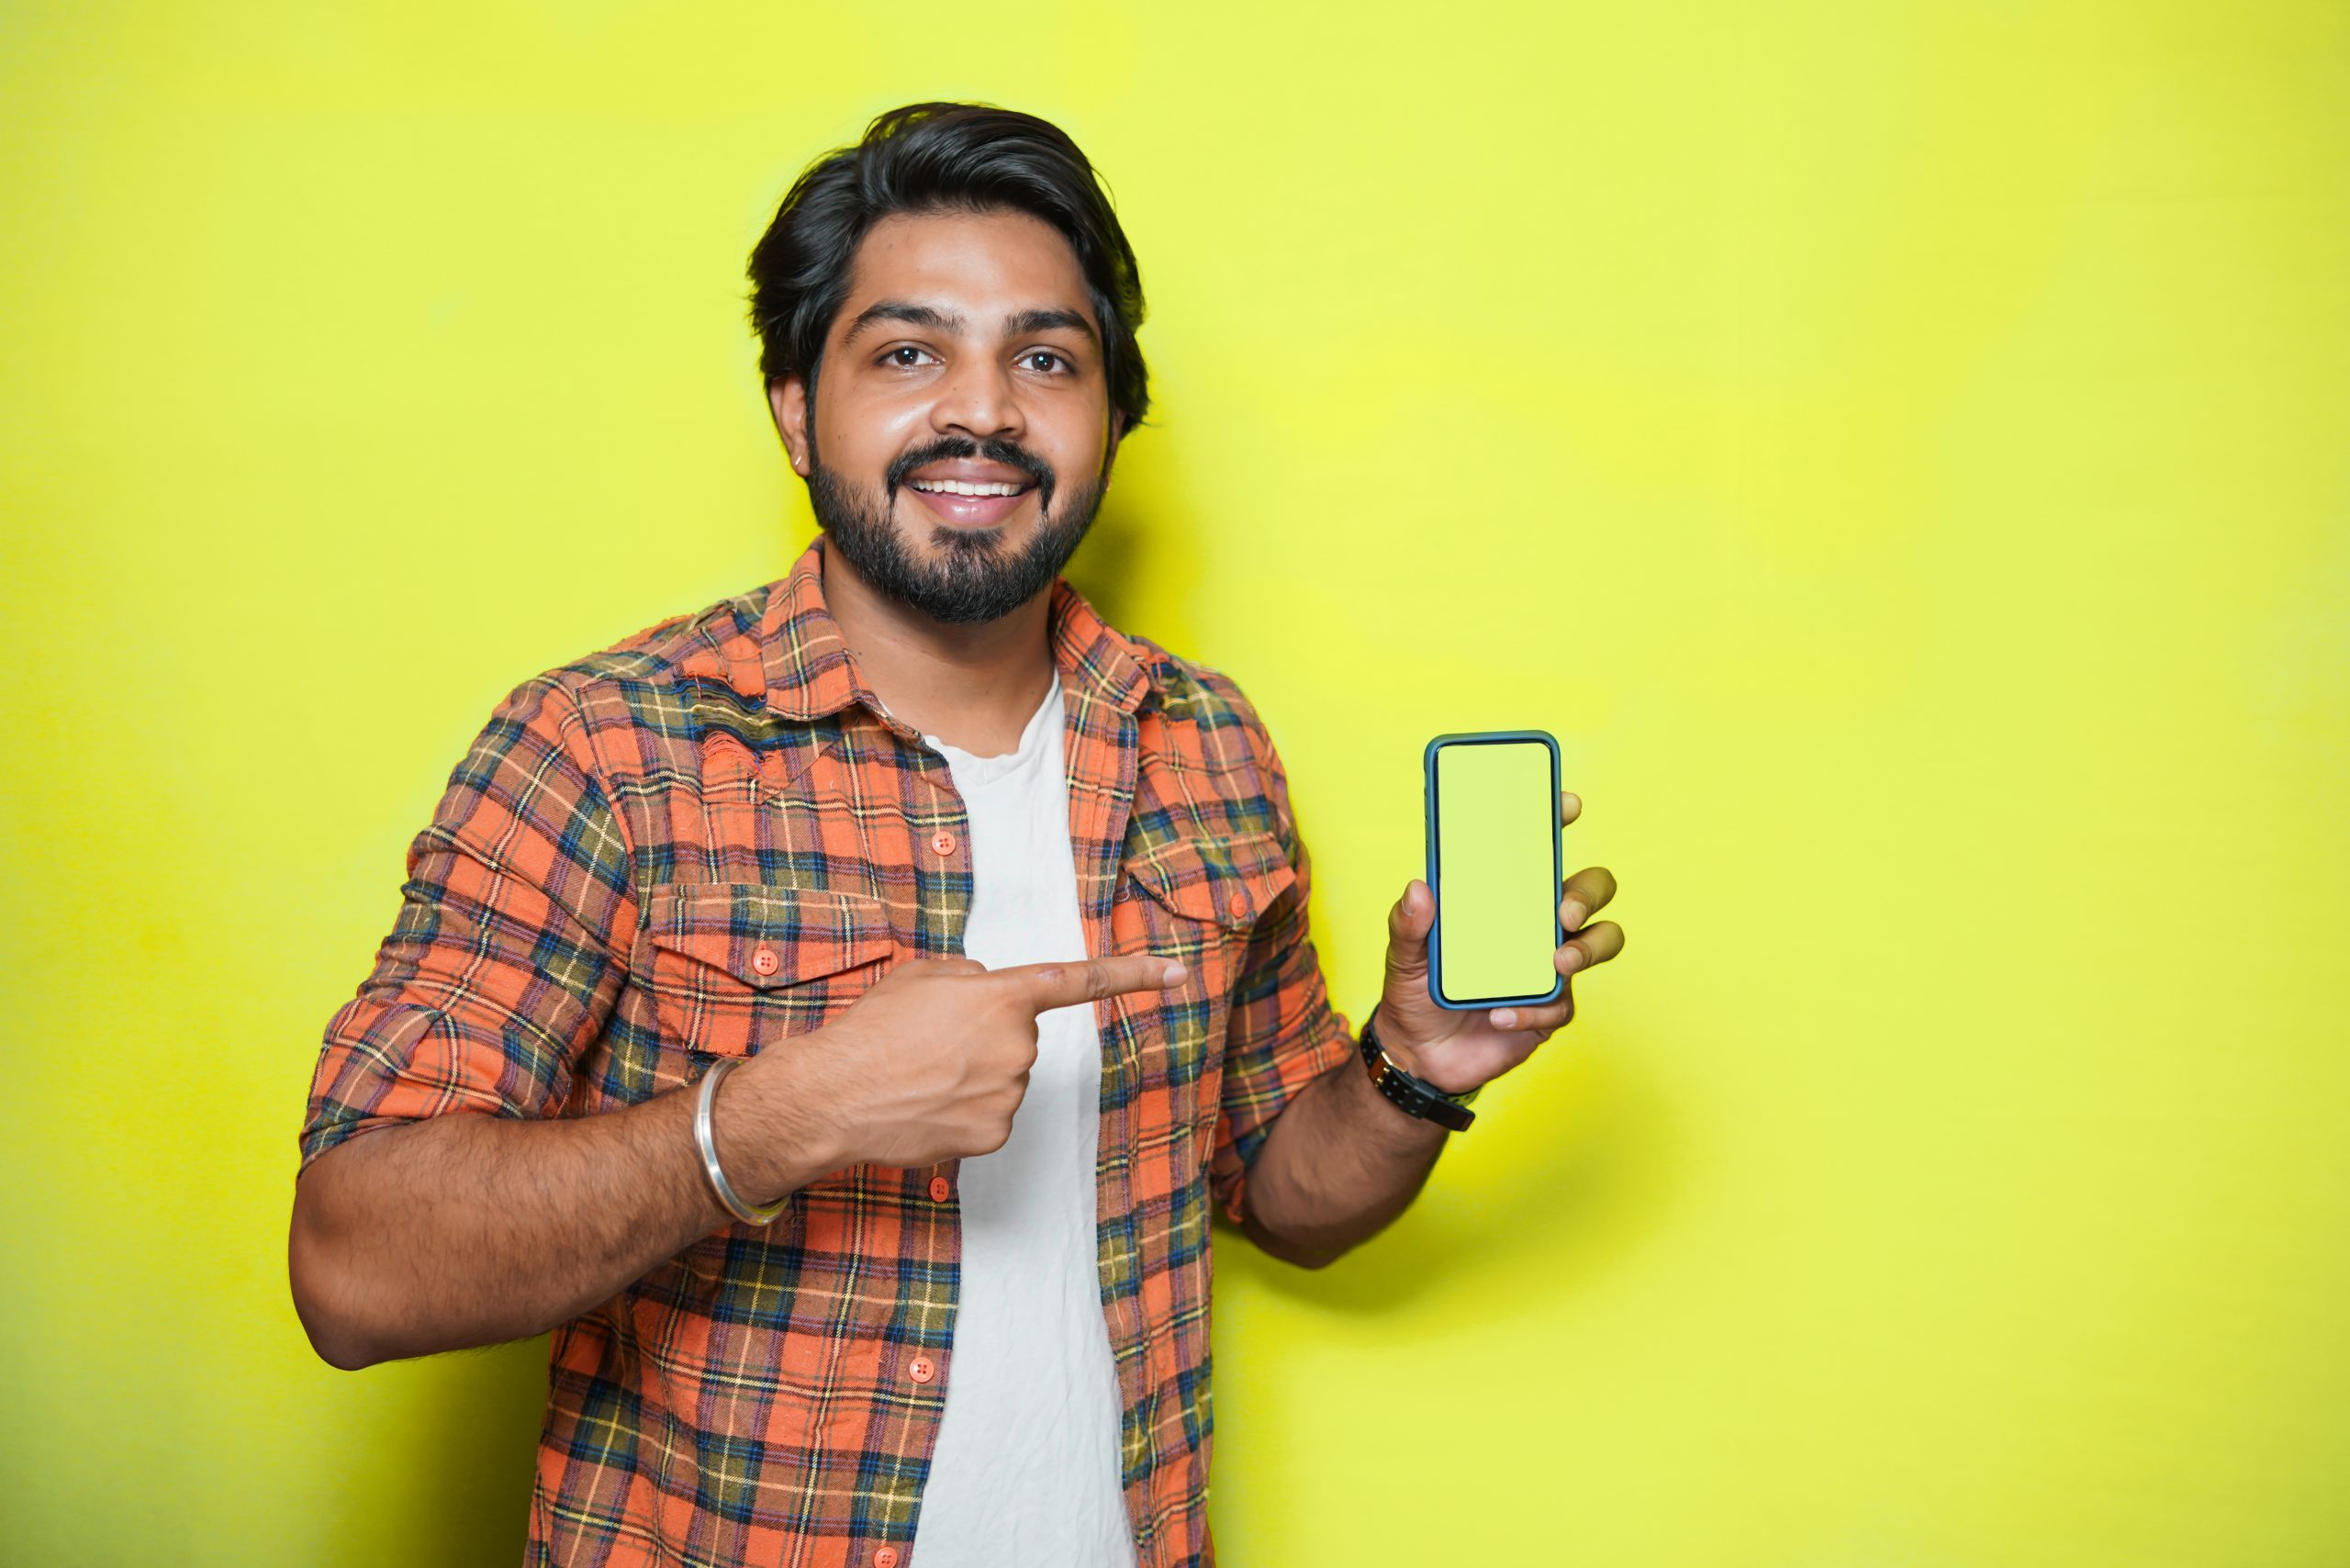 Indian male model pointing at cell phone